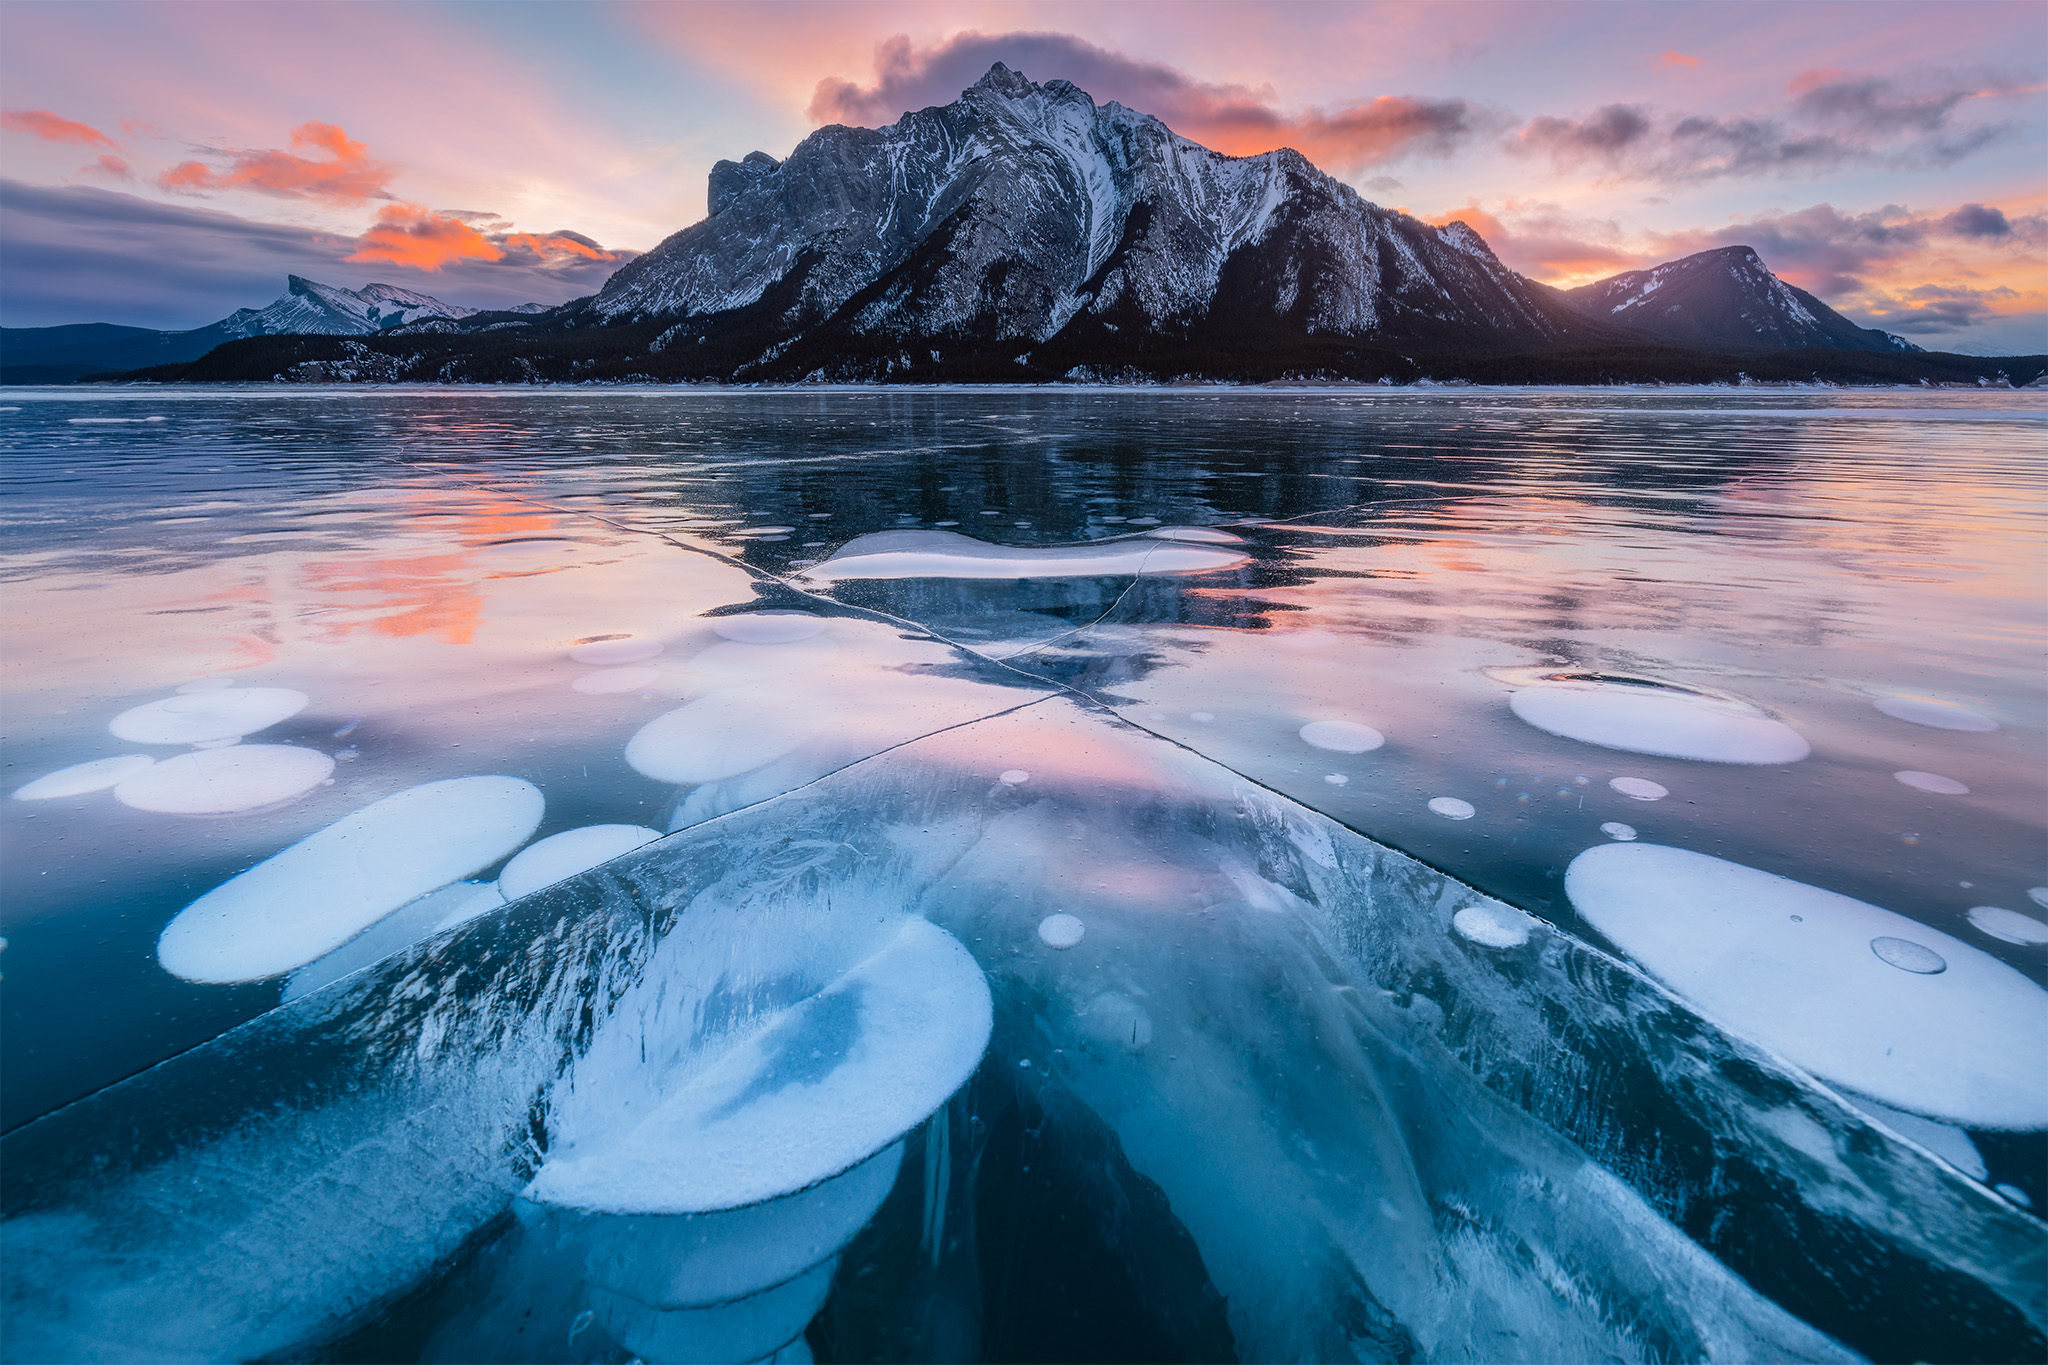 A landscape photograph of methane bubbles on abraham lake during sunrise in the winter